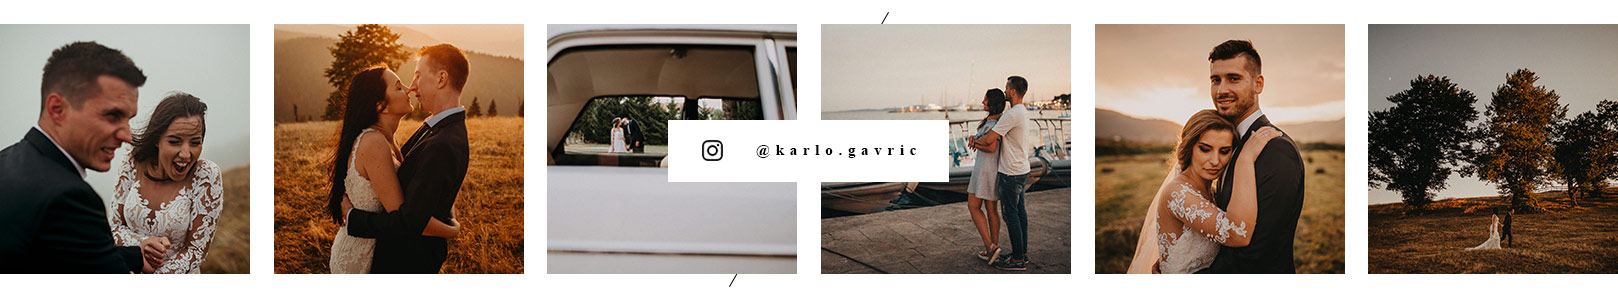 Follow me on Instagram for more recent stories @karlo.gavric